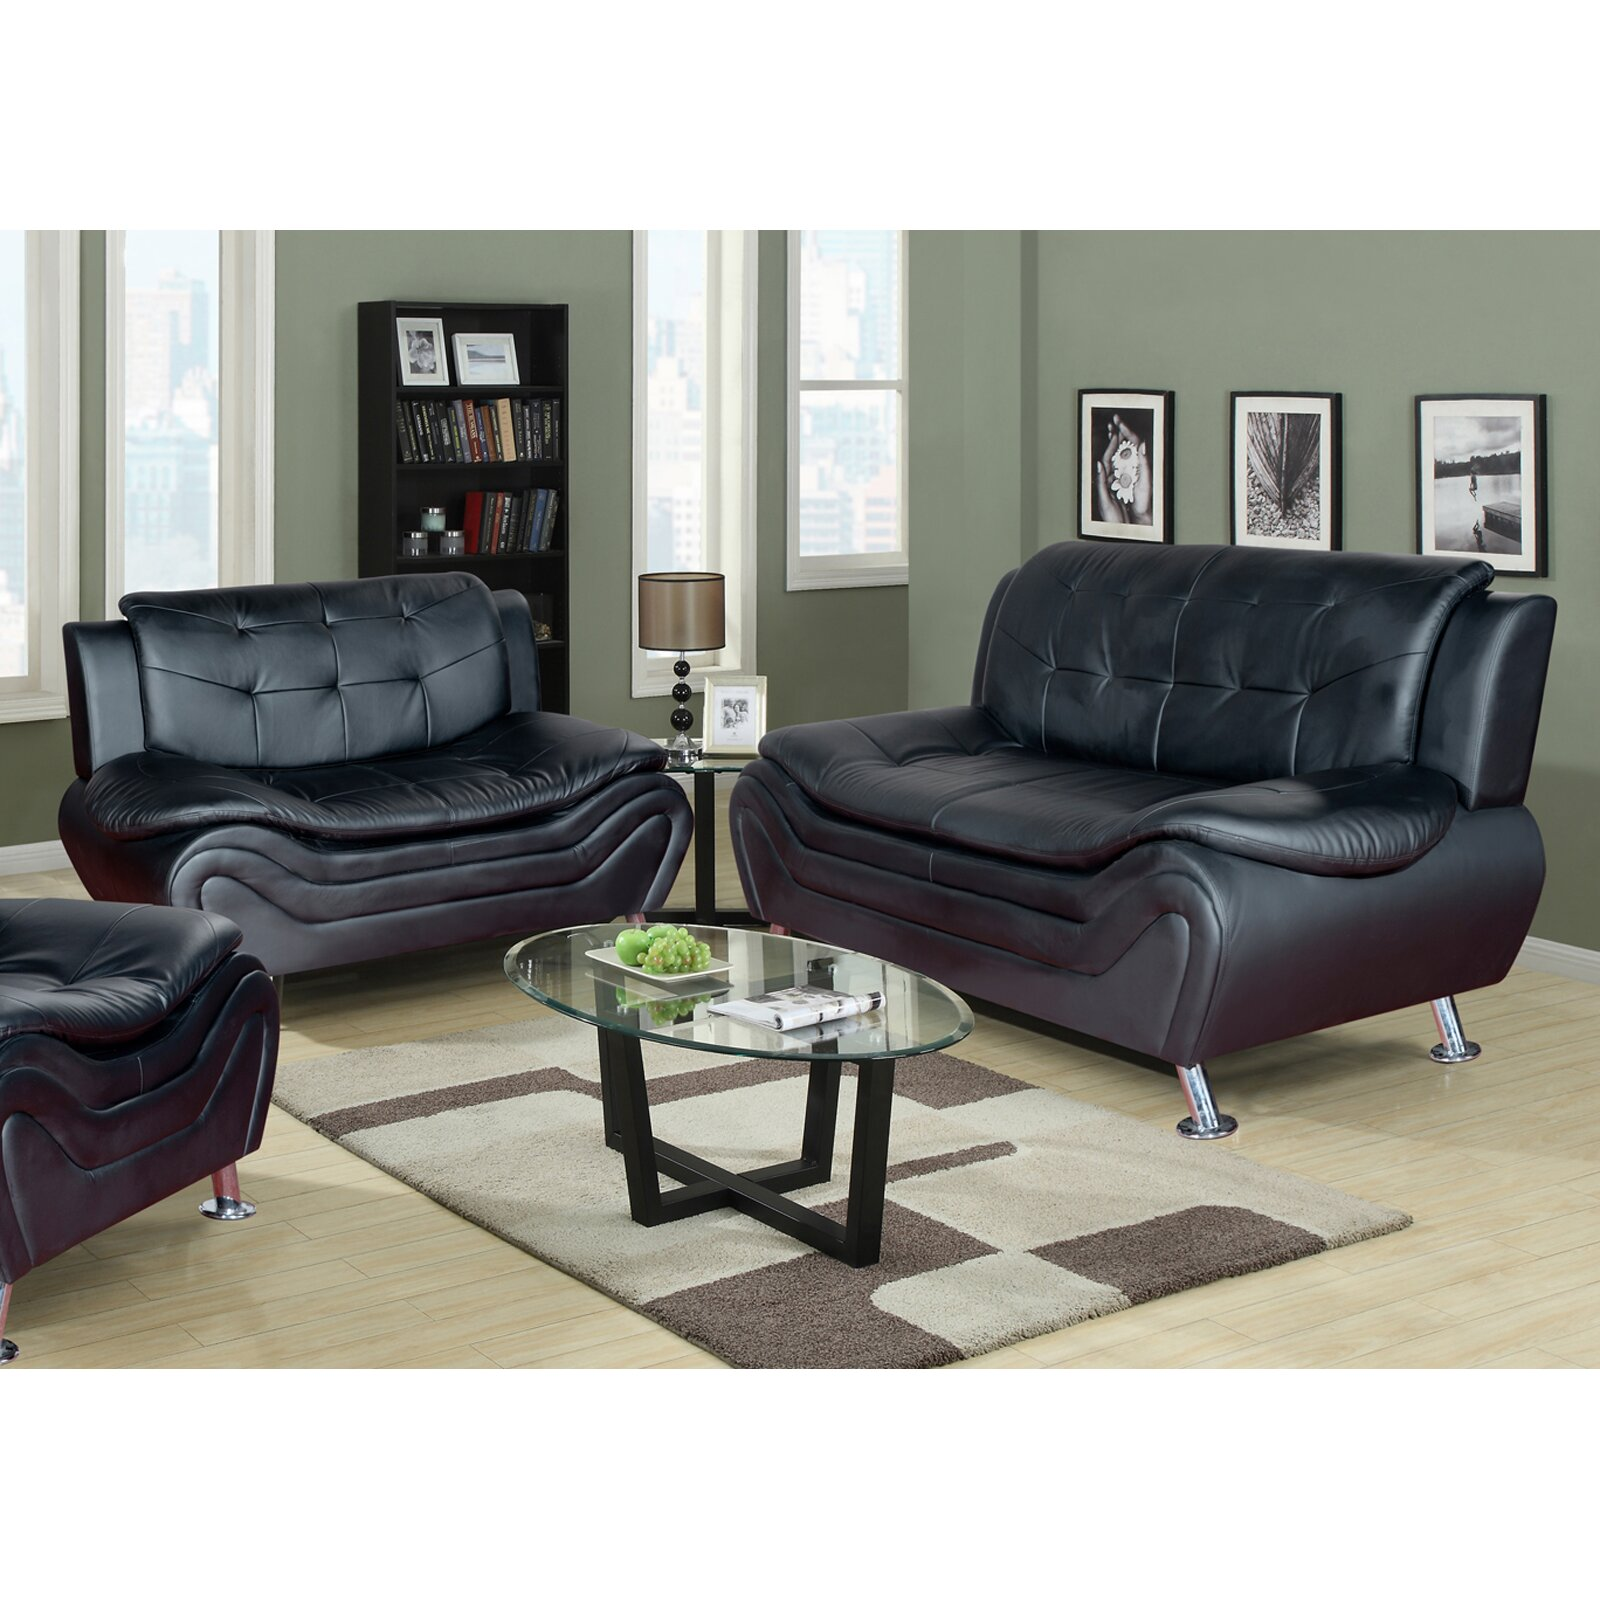 Beverly Fine Furniture Linda Leather Sofa And Loveseat Set Reviews Wayfair